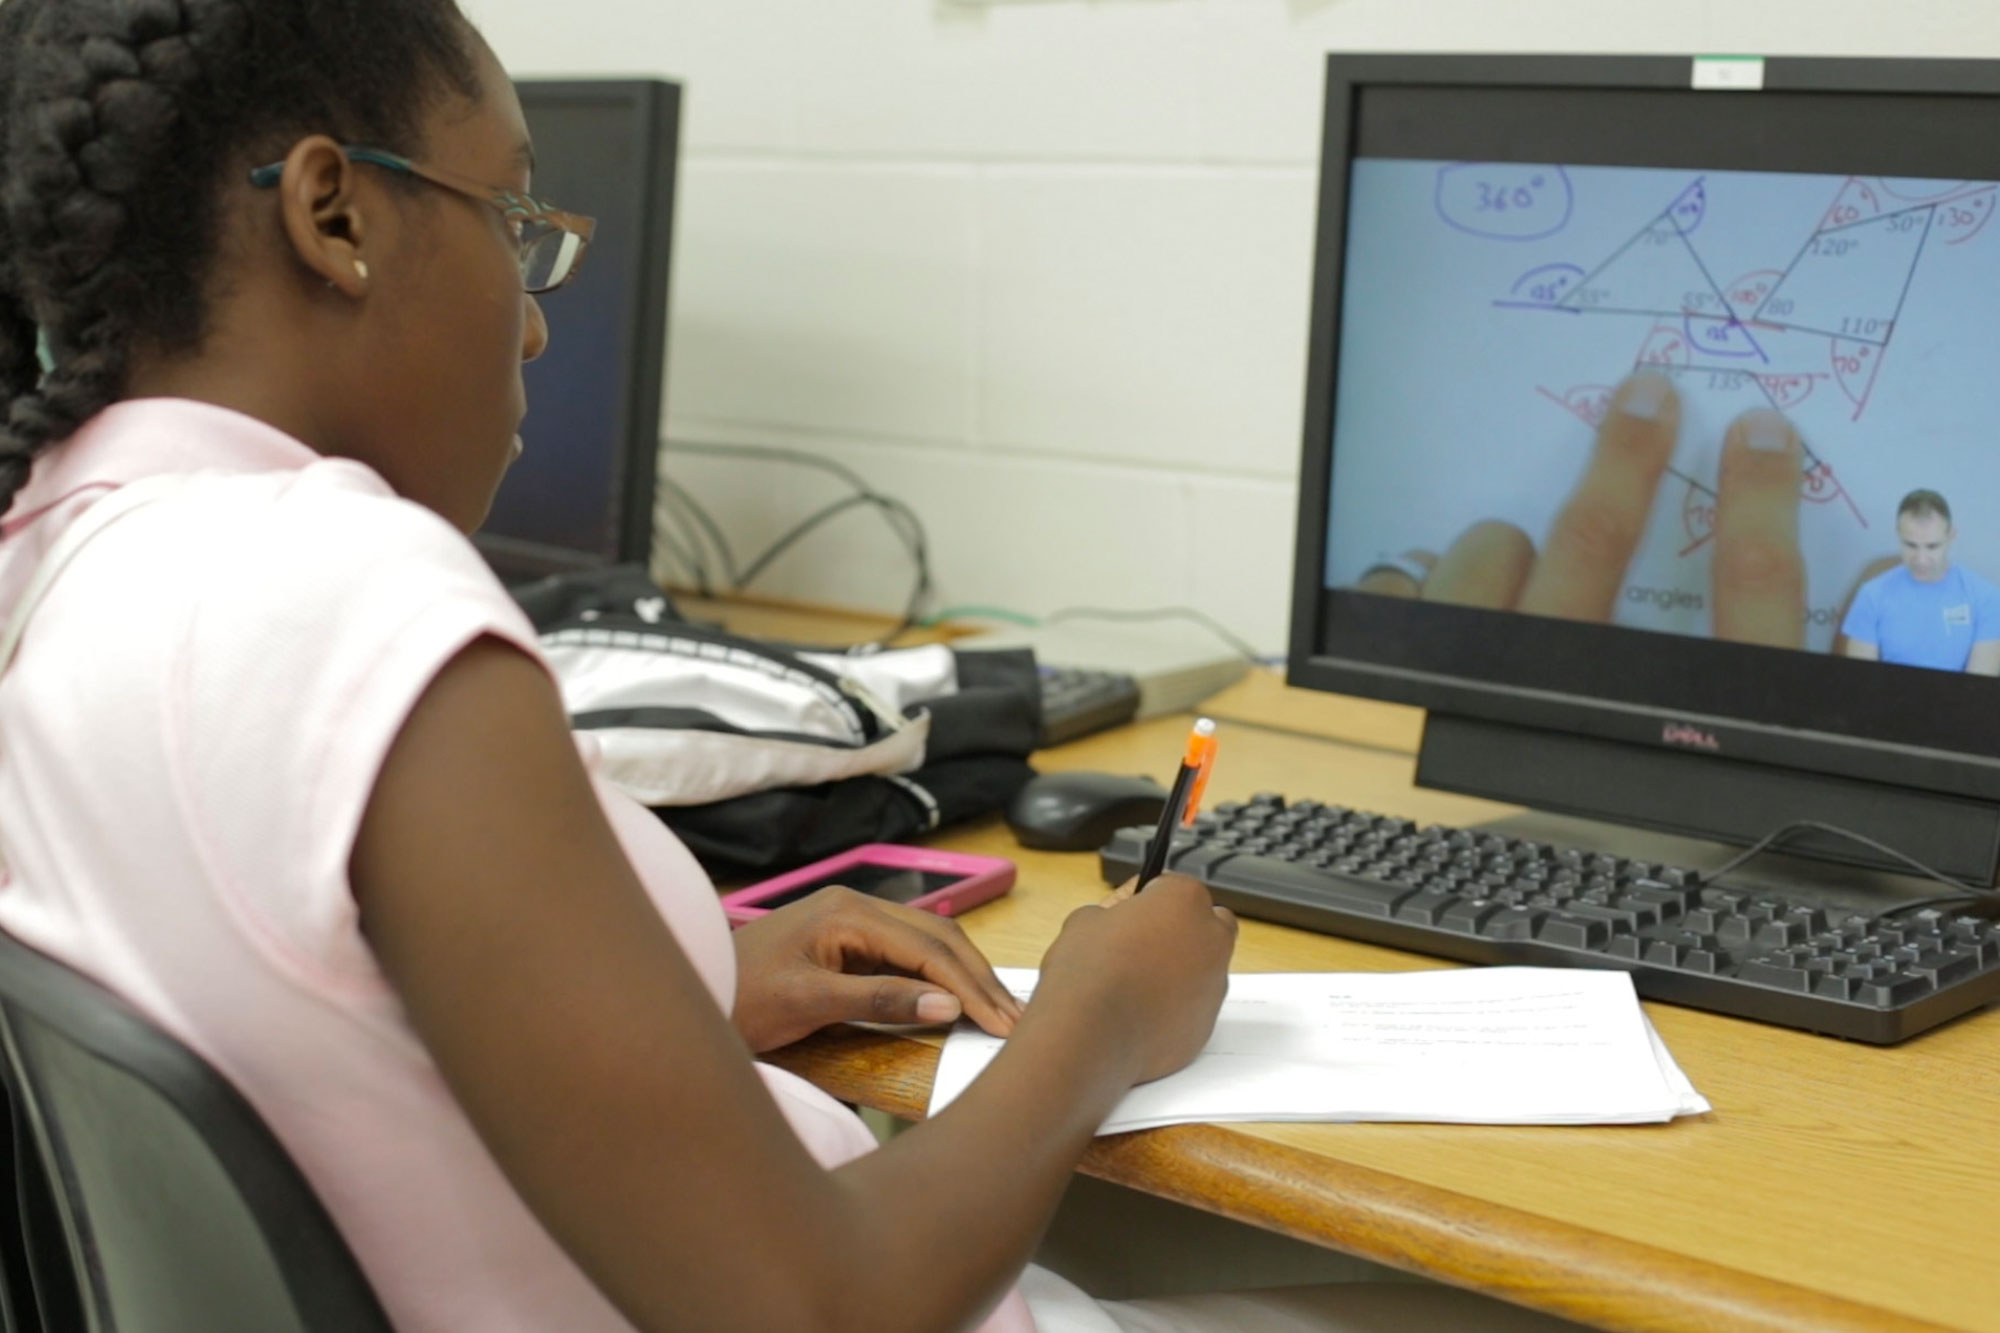 A female student uses Algebra Nation on a computer in her classroom to learn math concepts.